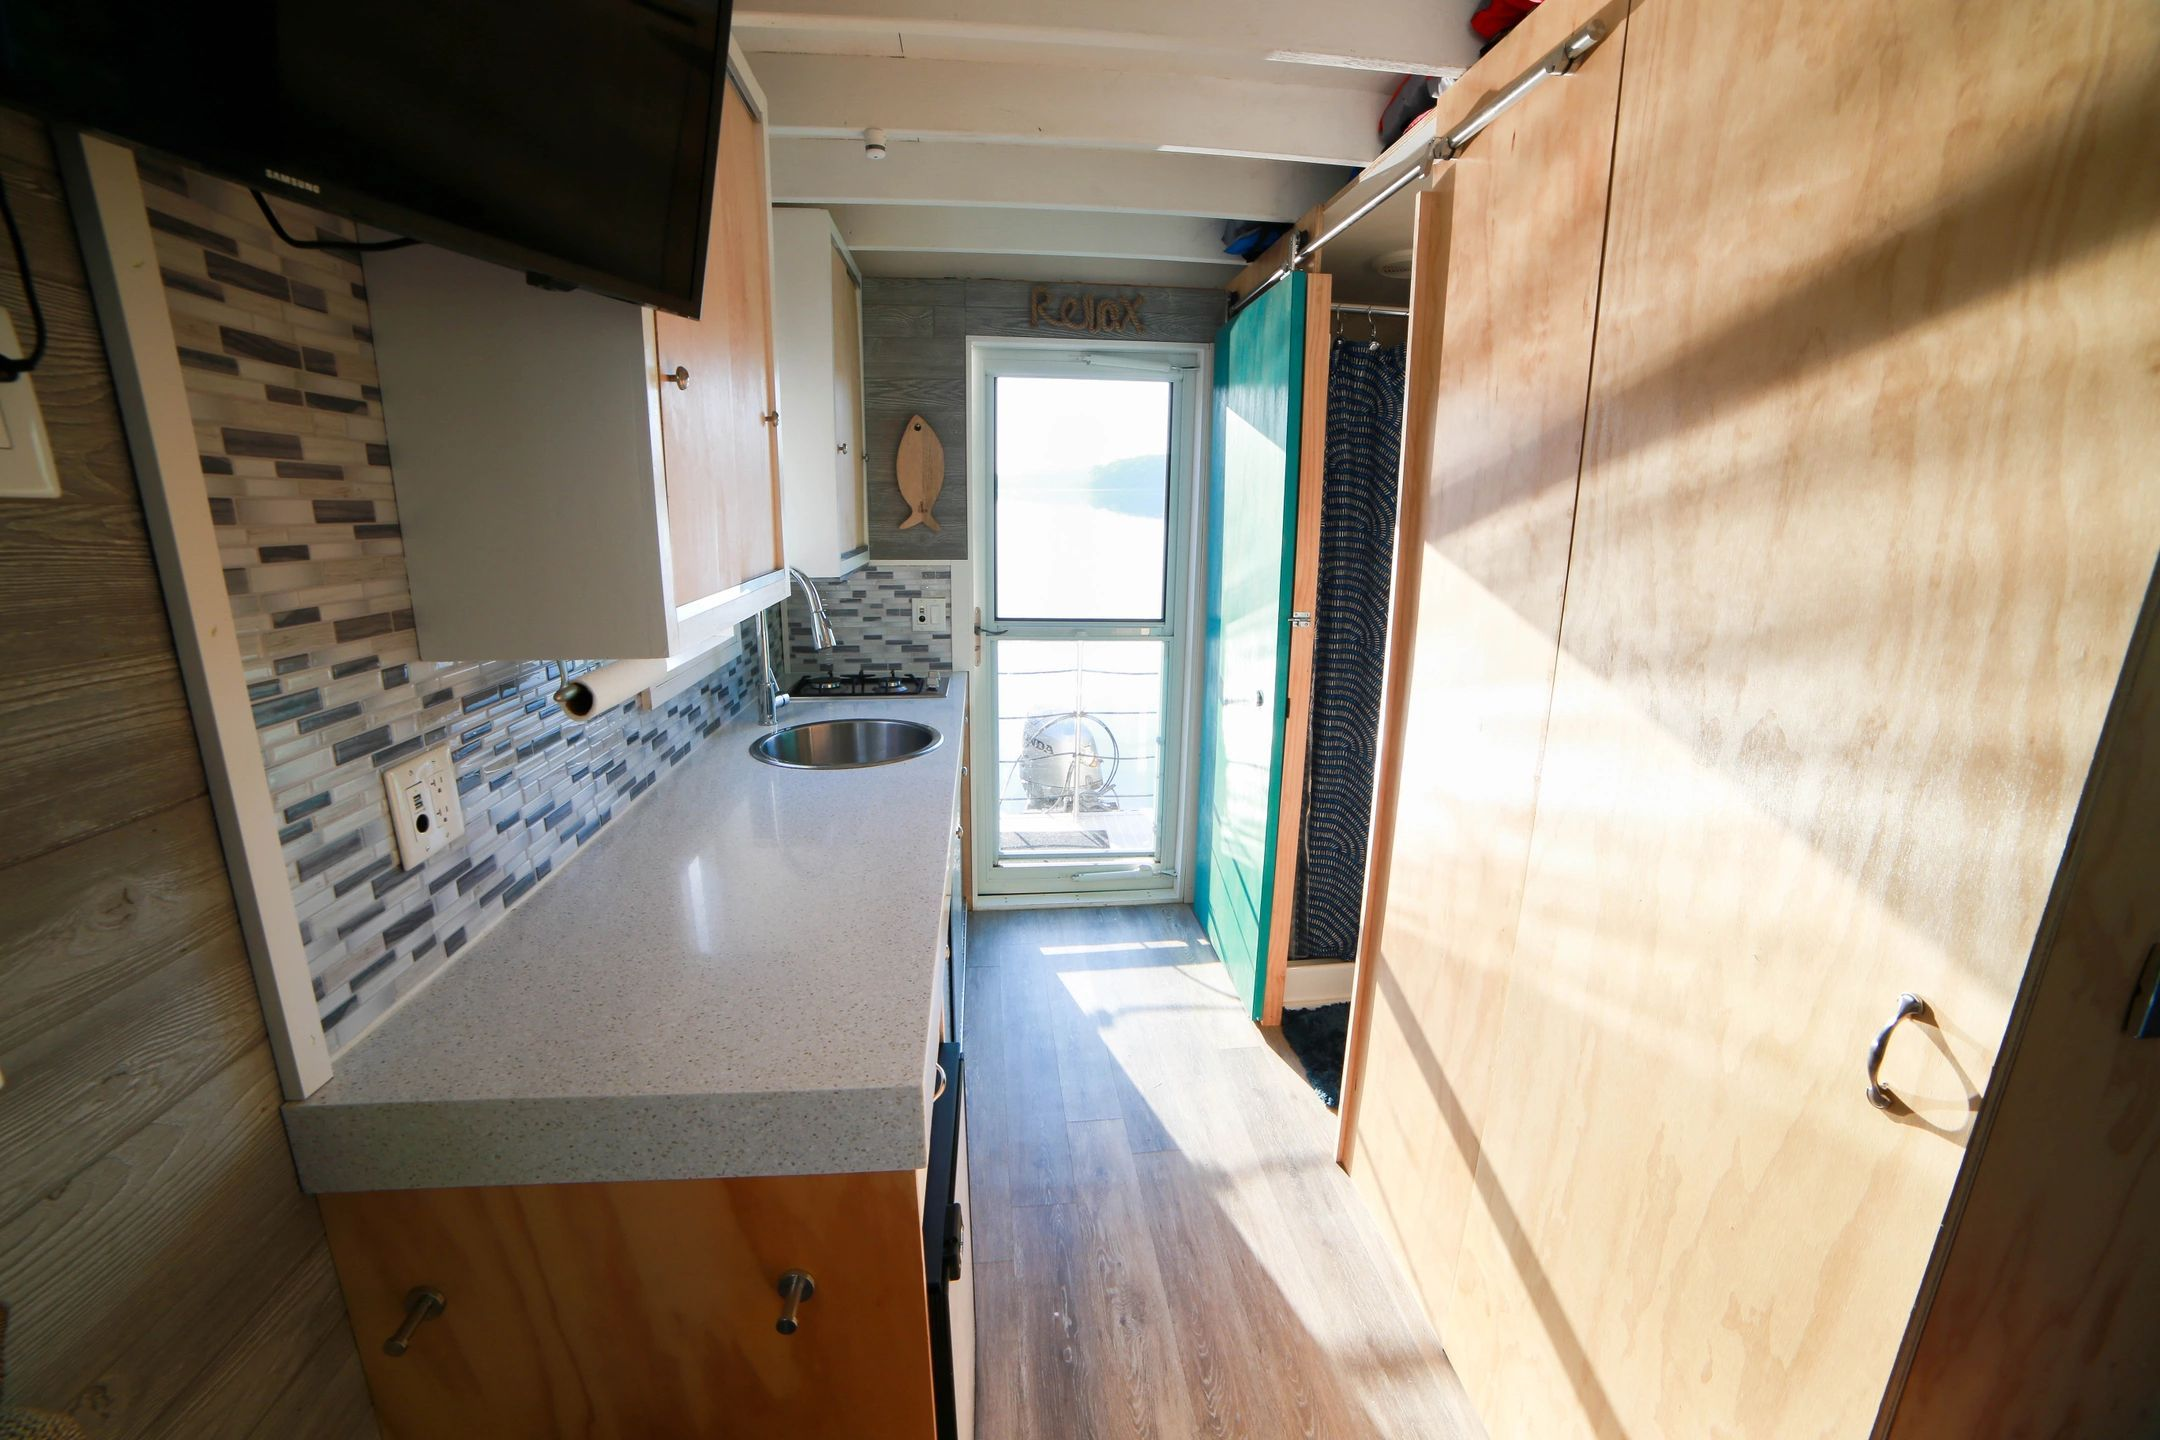 We Offer Overnight Rental Of Our Luxurious Tiny Houseboat